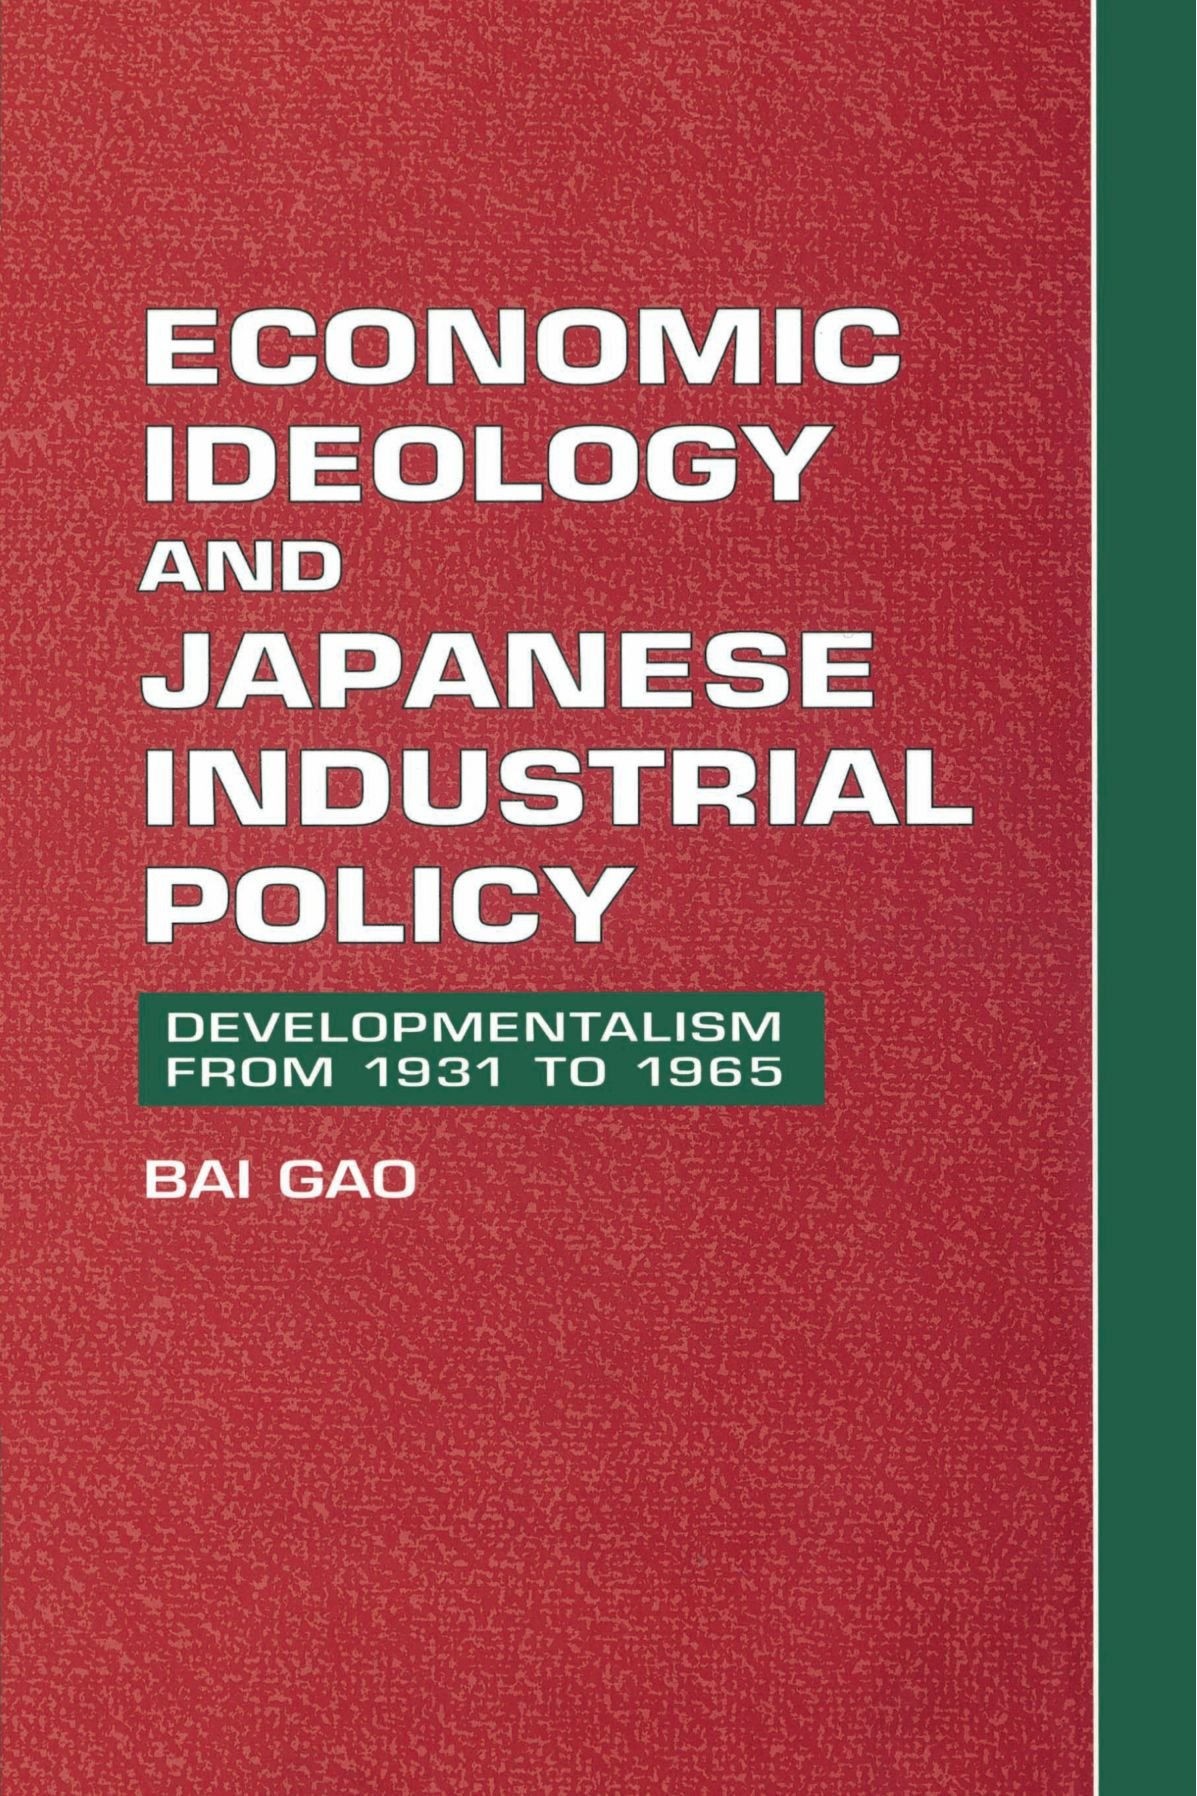 Download Economic Ideology and Japanese Industrial Policy: Developmentalism from 1931 to 1965 pdf epub